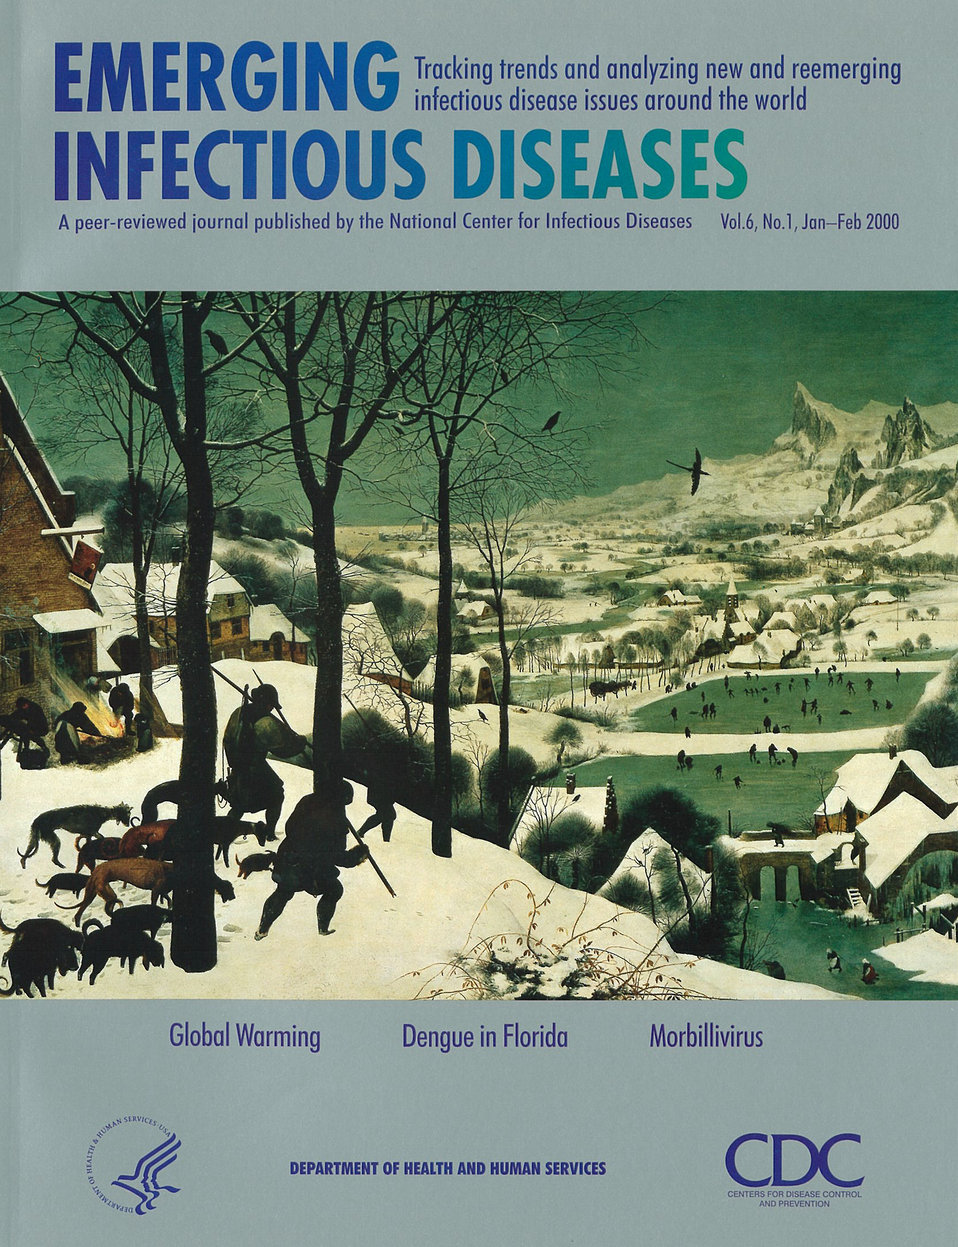 Emerging Infectious Diseases (EID) cover artwork for Volume 6, Number 1, January-February 2000 issue.